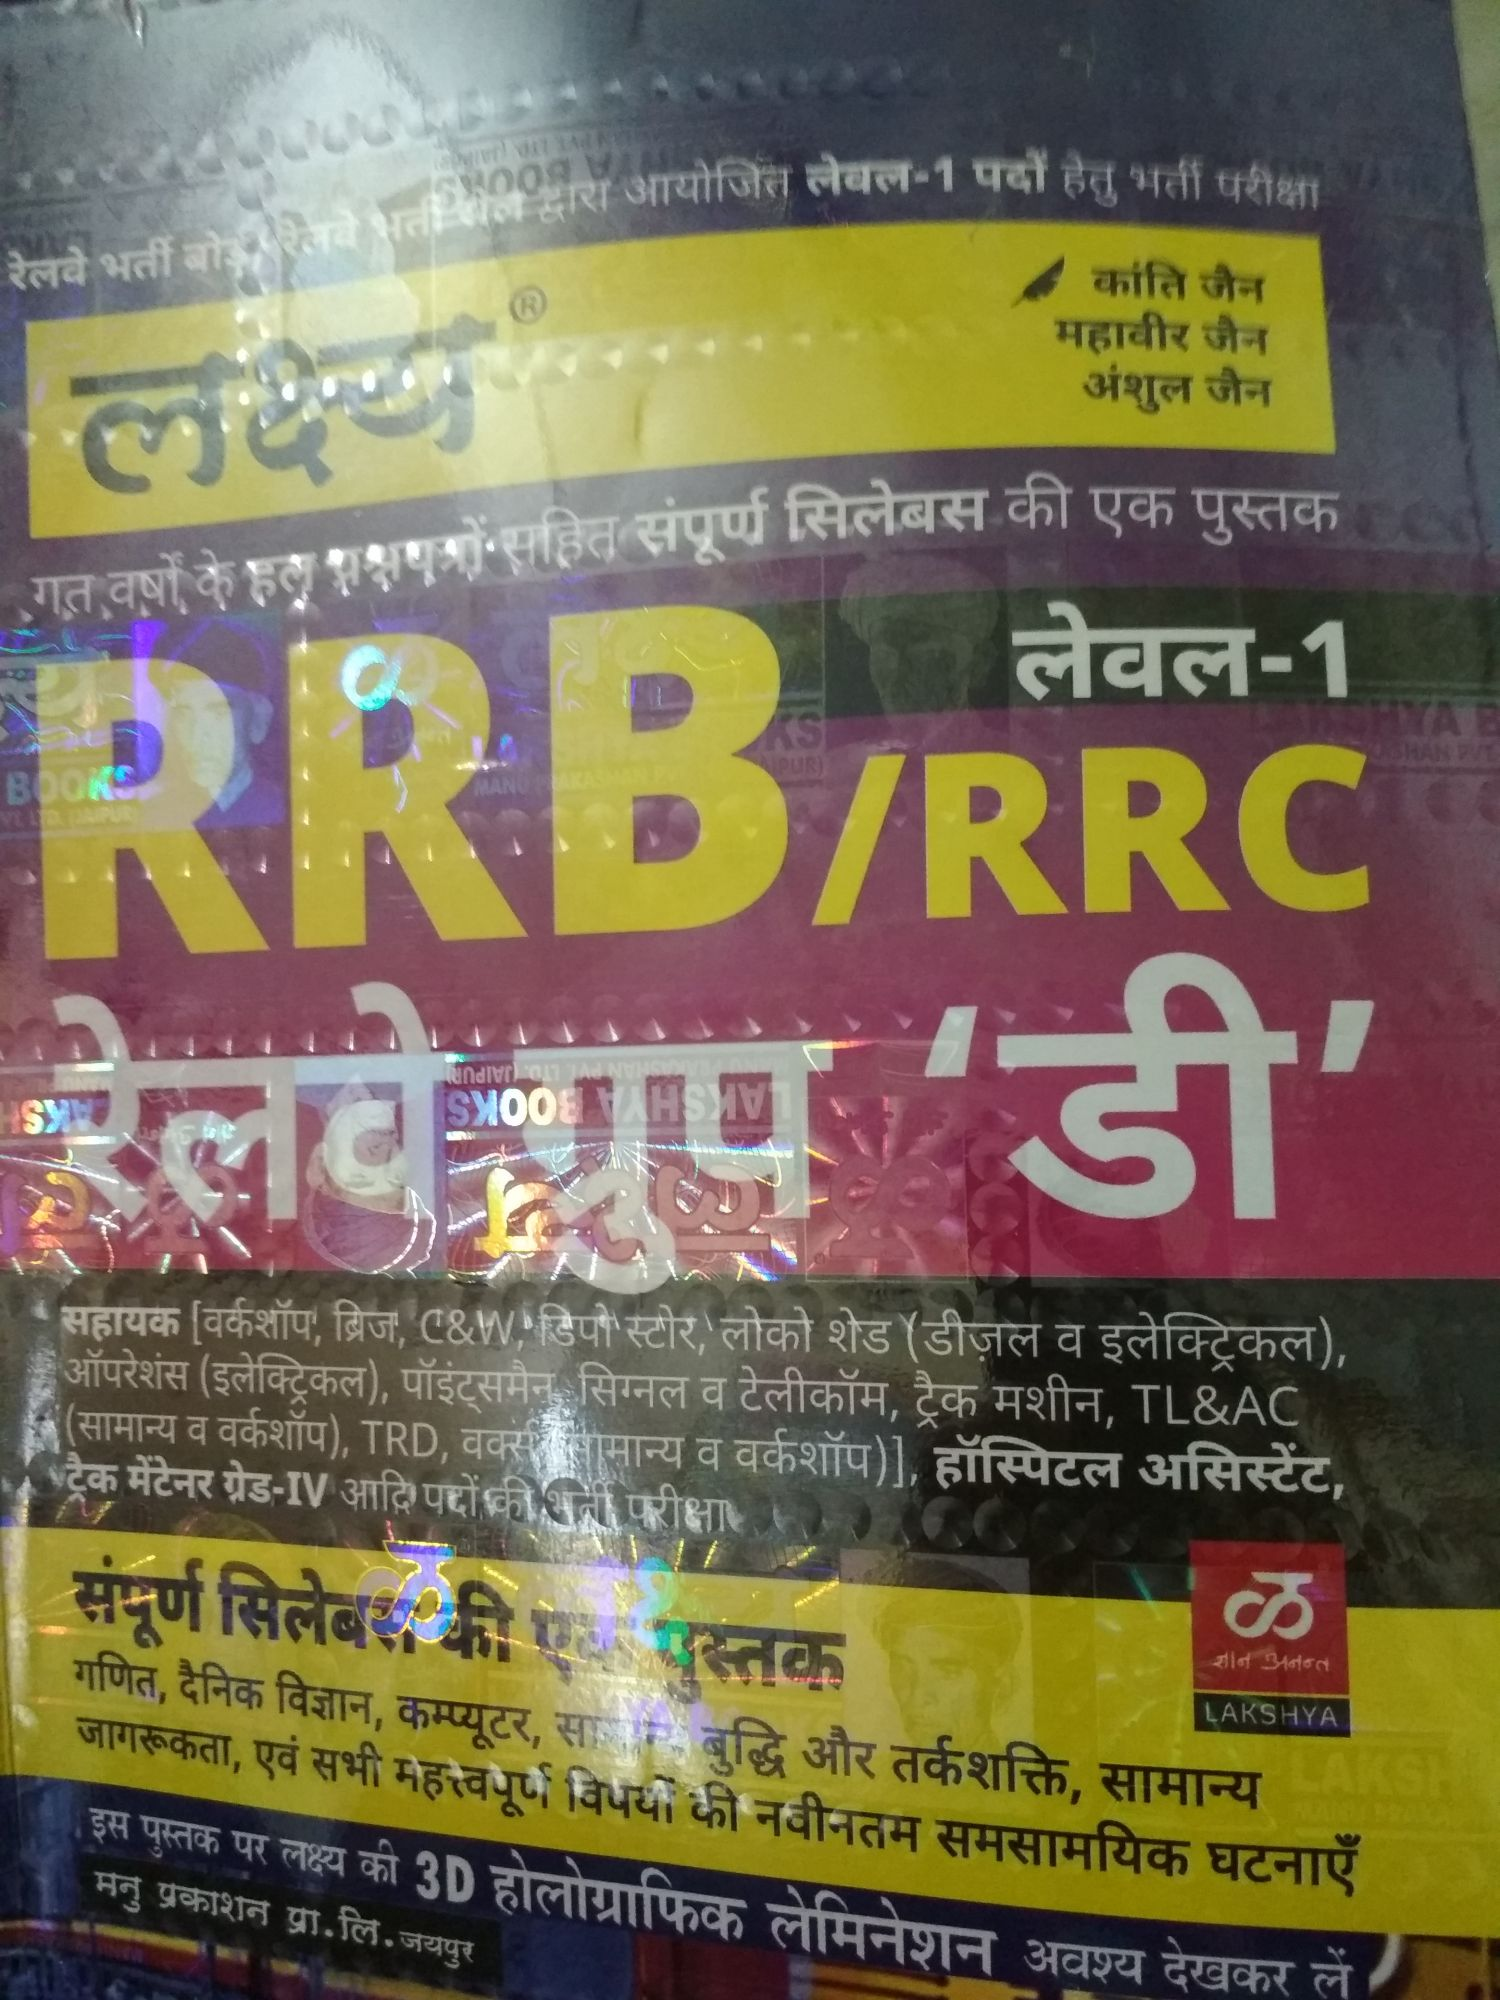 Lakshay Rrb Railway Group D Book By Jain  in hindi medium